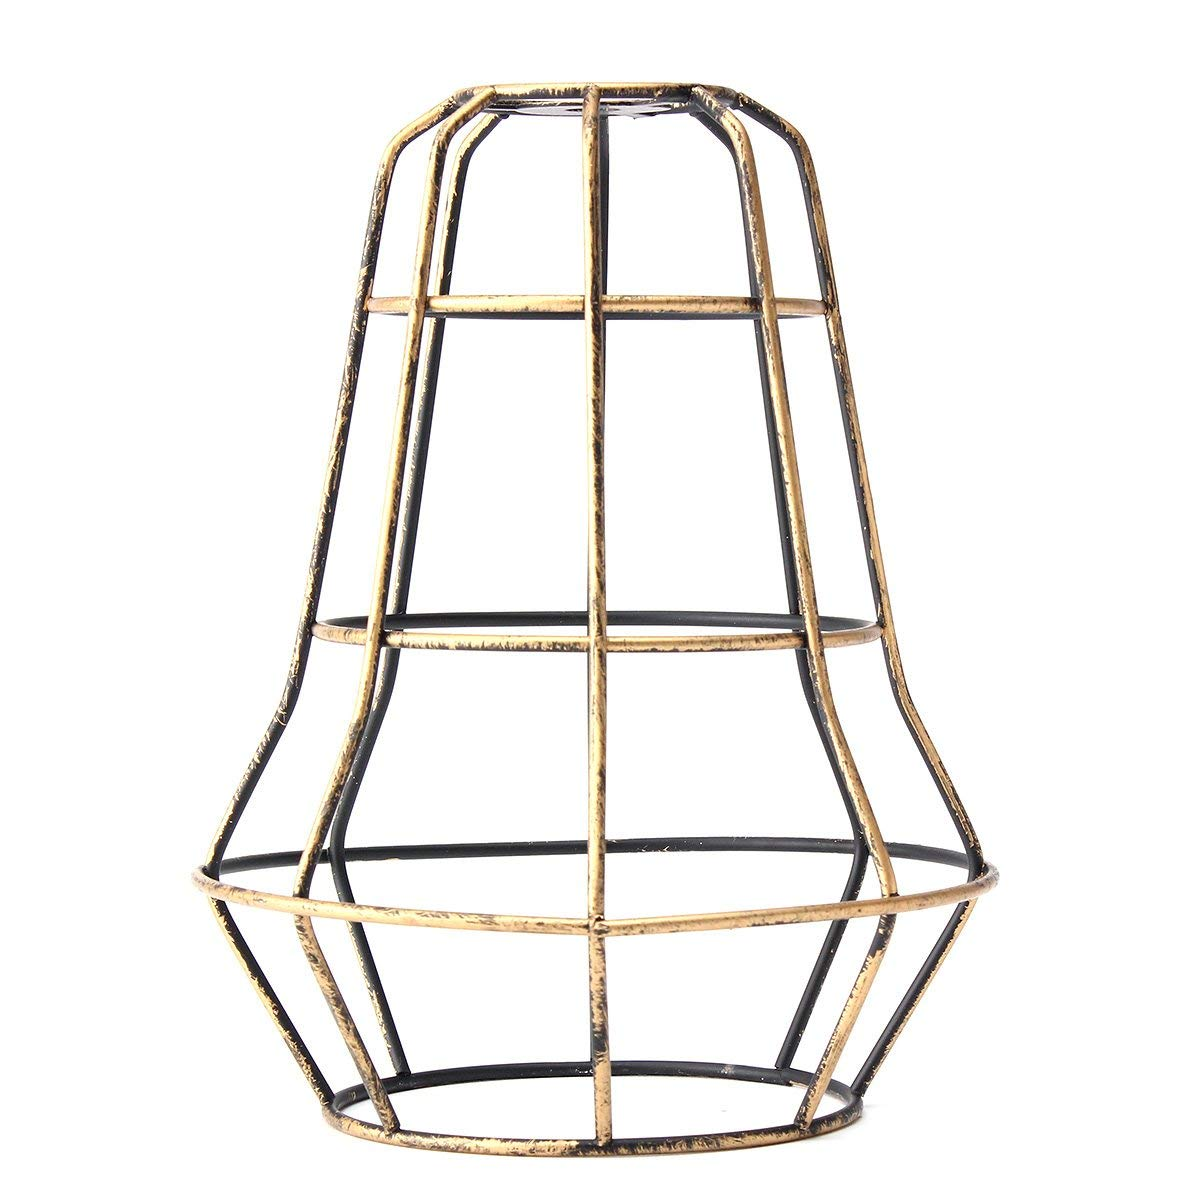 Wincom Dishman LIGHTING ACCESSORIES Vintage Pendant Trouble Light Tower Shape Hanging DIY Lampshade